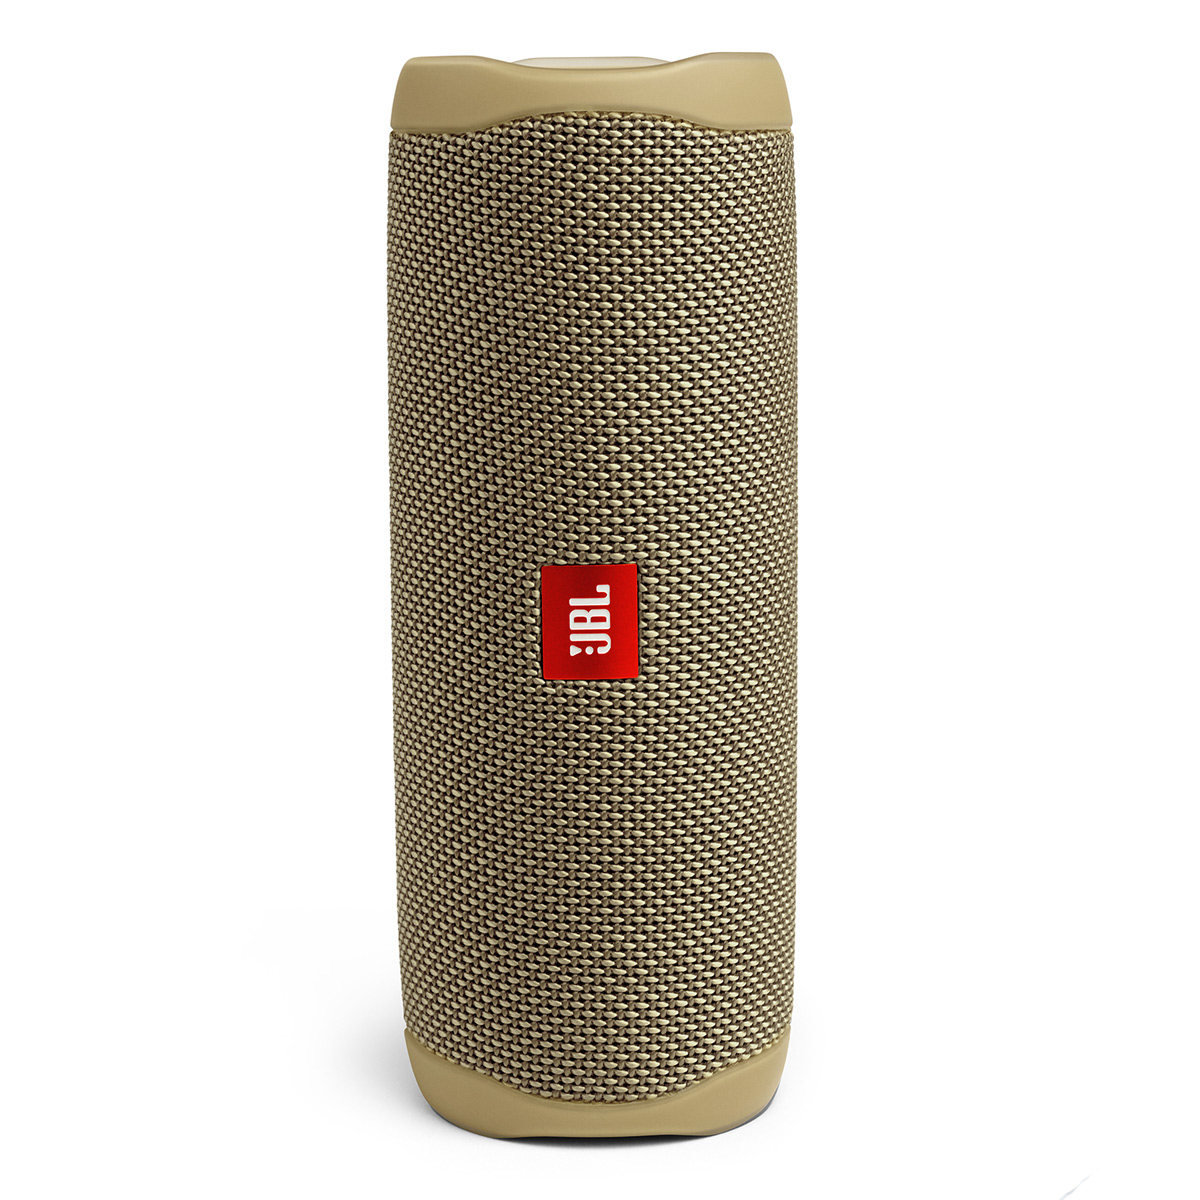 JBL-Flip-5-Portable-Waterproof-Bluetooth-Speaker thumbnail 34